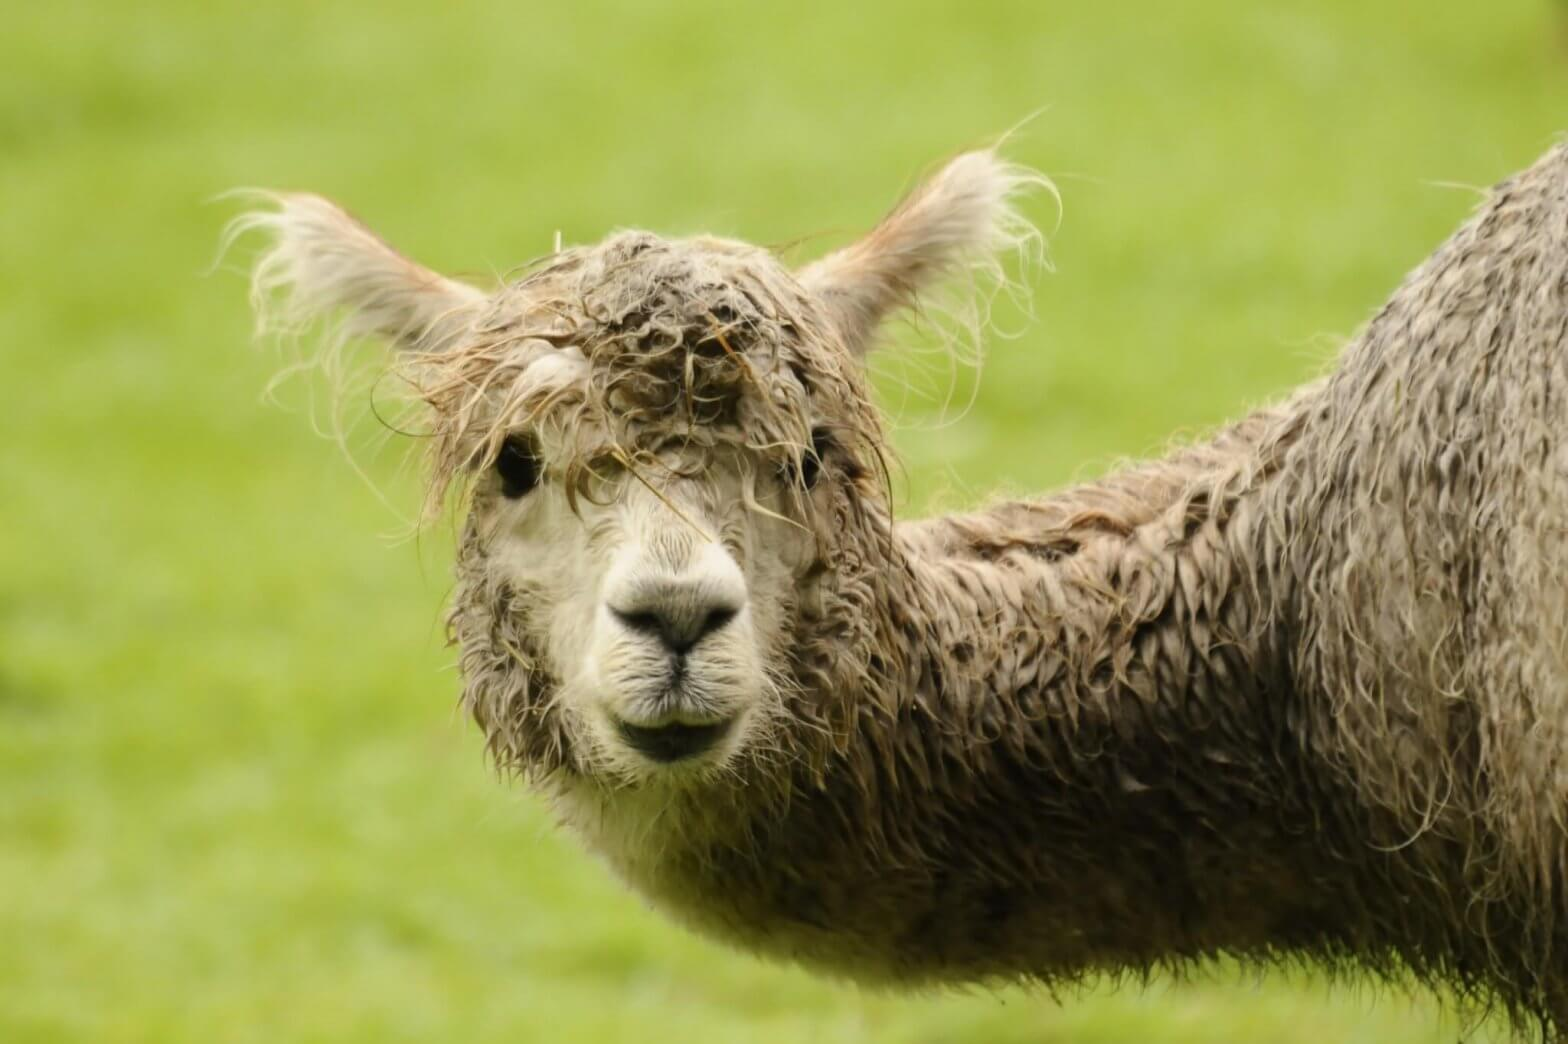 Topaz the alpaca after having a bathe at the Children's Zoo, Walton Hall and Gardens. Taken by keen amateur photographer Darren Moston.